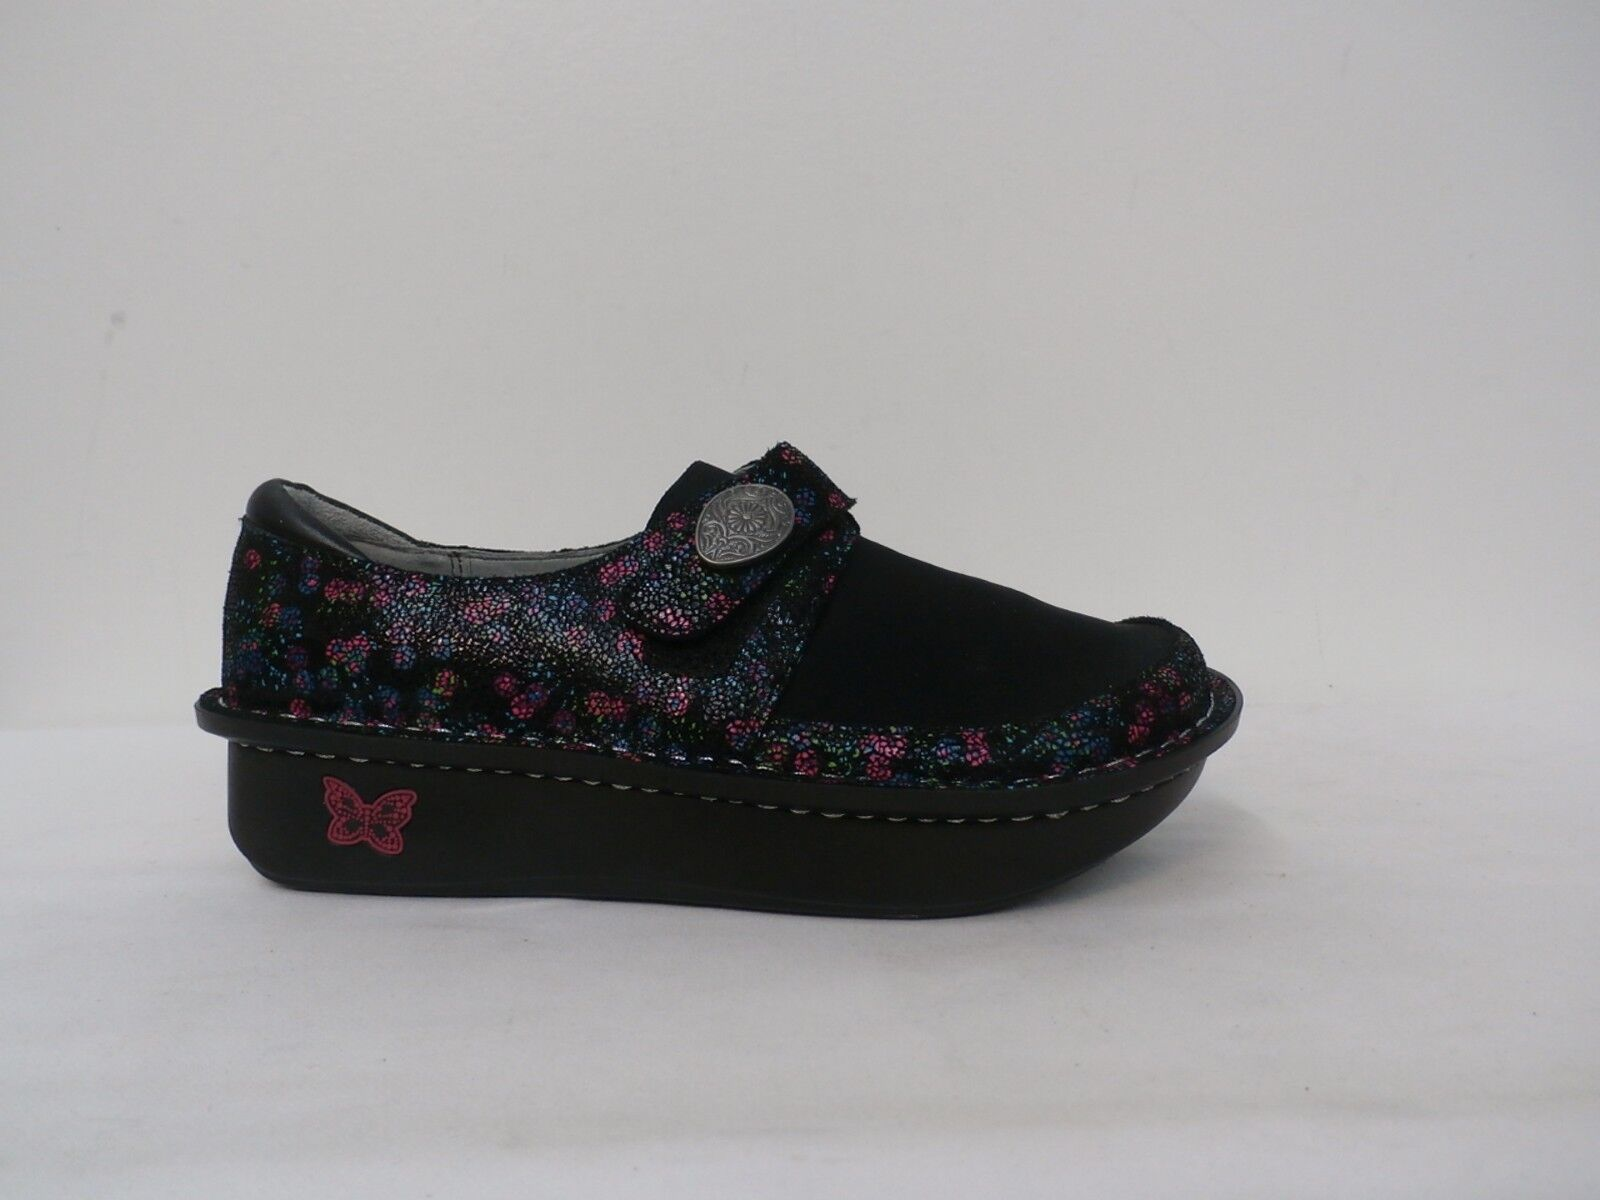 Alegria Dream Slip-ons Fit Leather and Neoprene Slip-ons Dream - Dena SWEETUMS Size 35 (5-5.5) aa7077